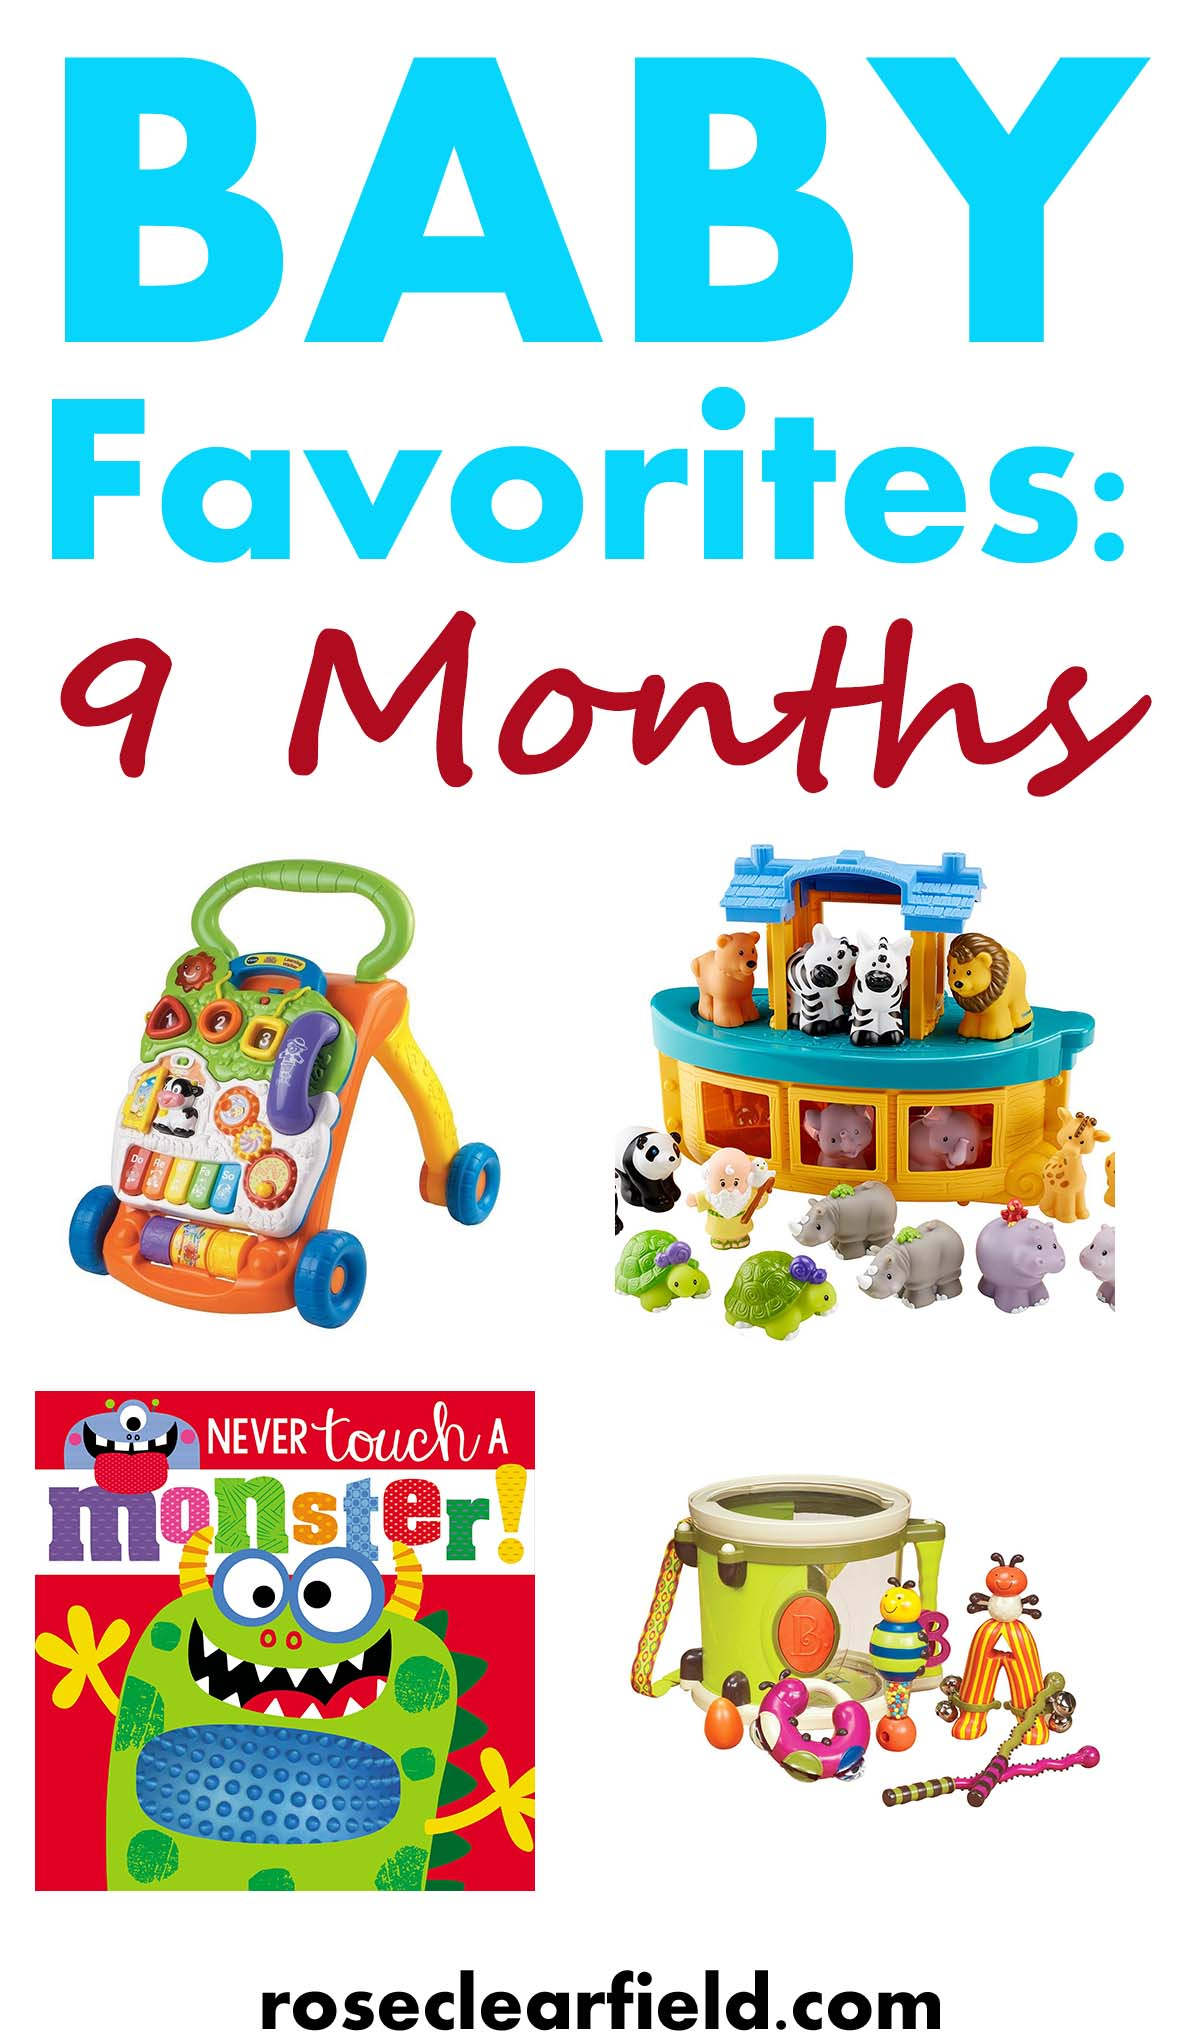 Baby Favorites: 9 Months | http://www.roseclearfield.com